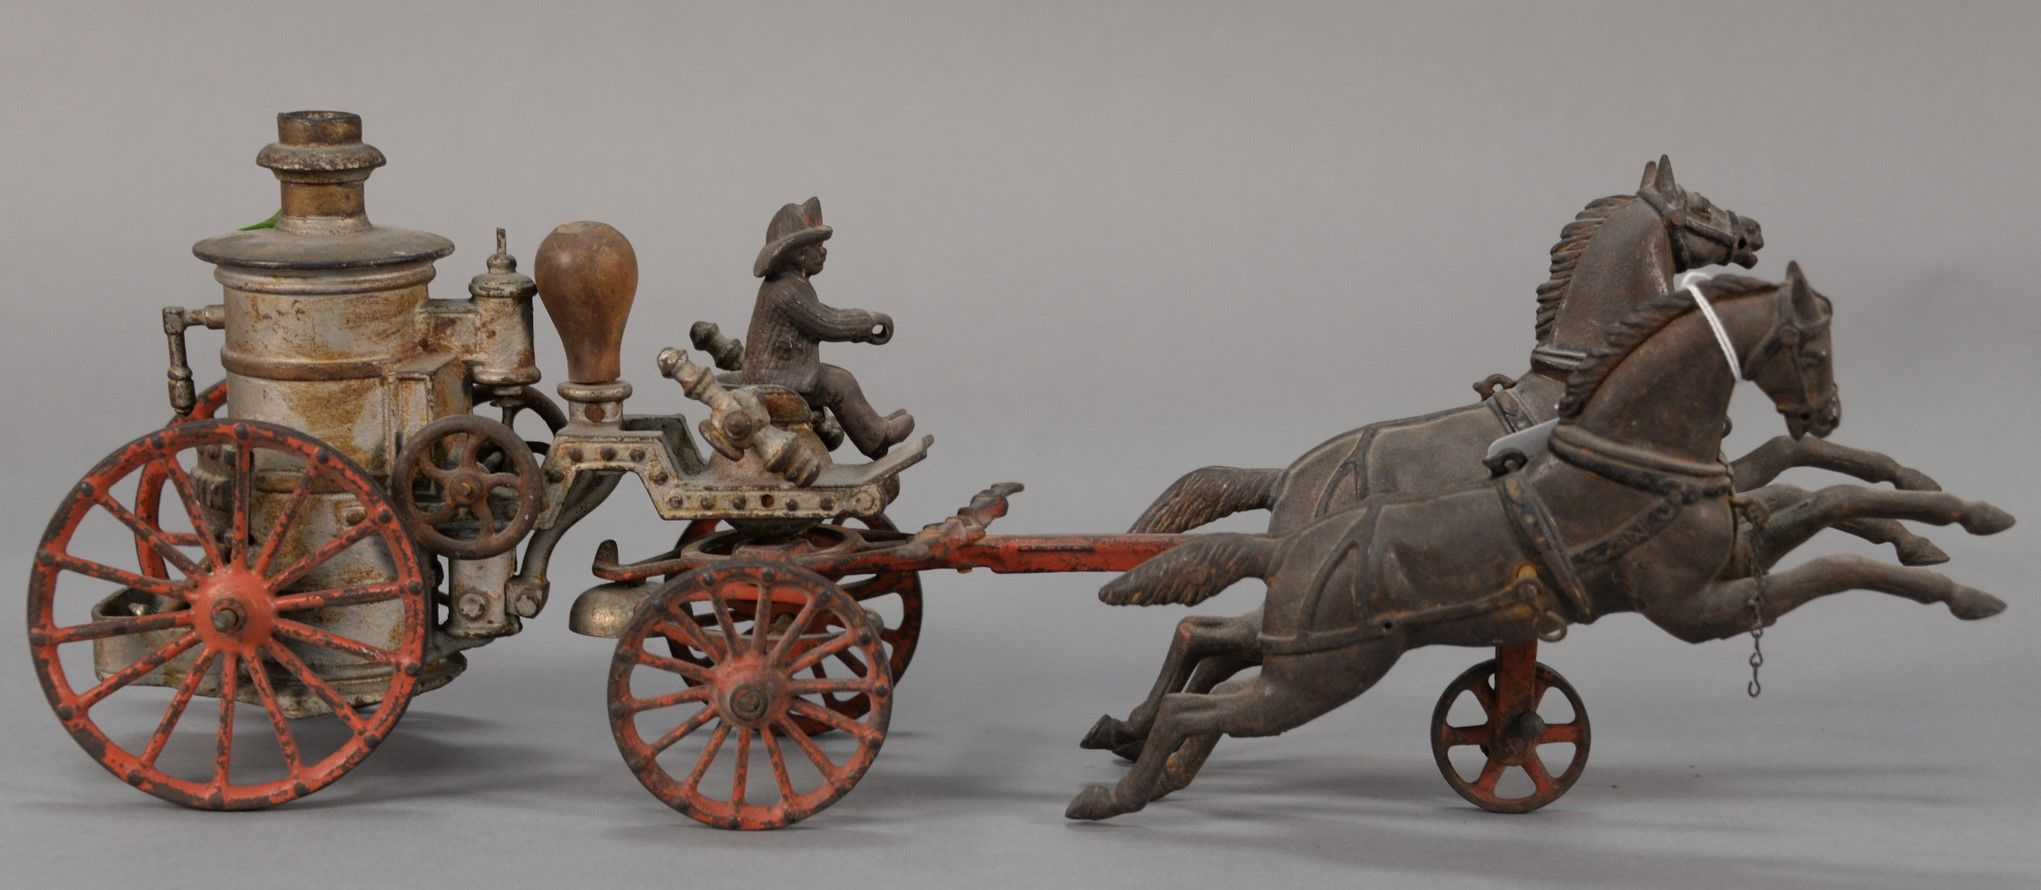 Cast iron horse drawn fire apparatus pulled by two horses, boiler door signed Phoenix, probably original silver and red paint.  ht. 7 1/4 in.; lg. 19 1/2 in.  Estimate: $250 - $450